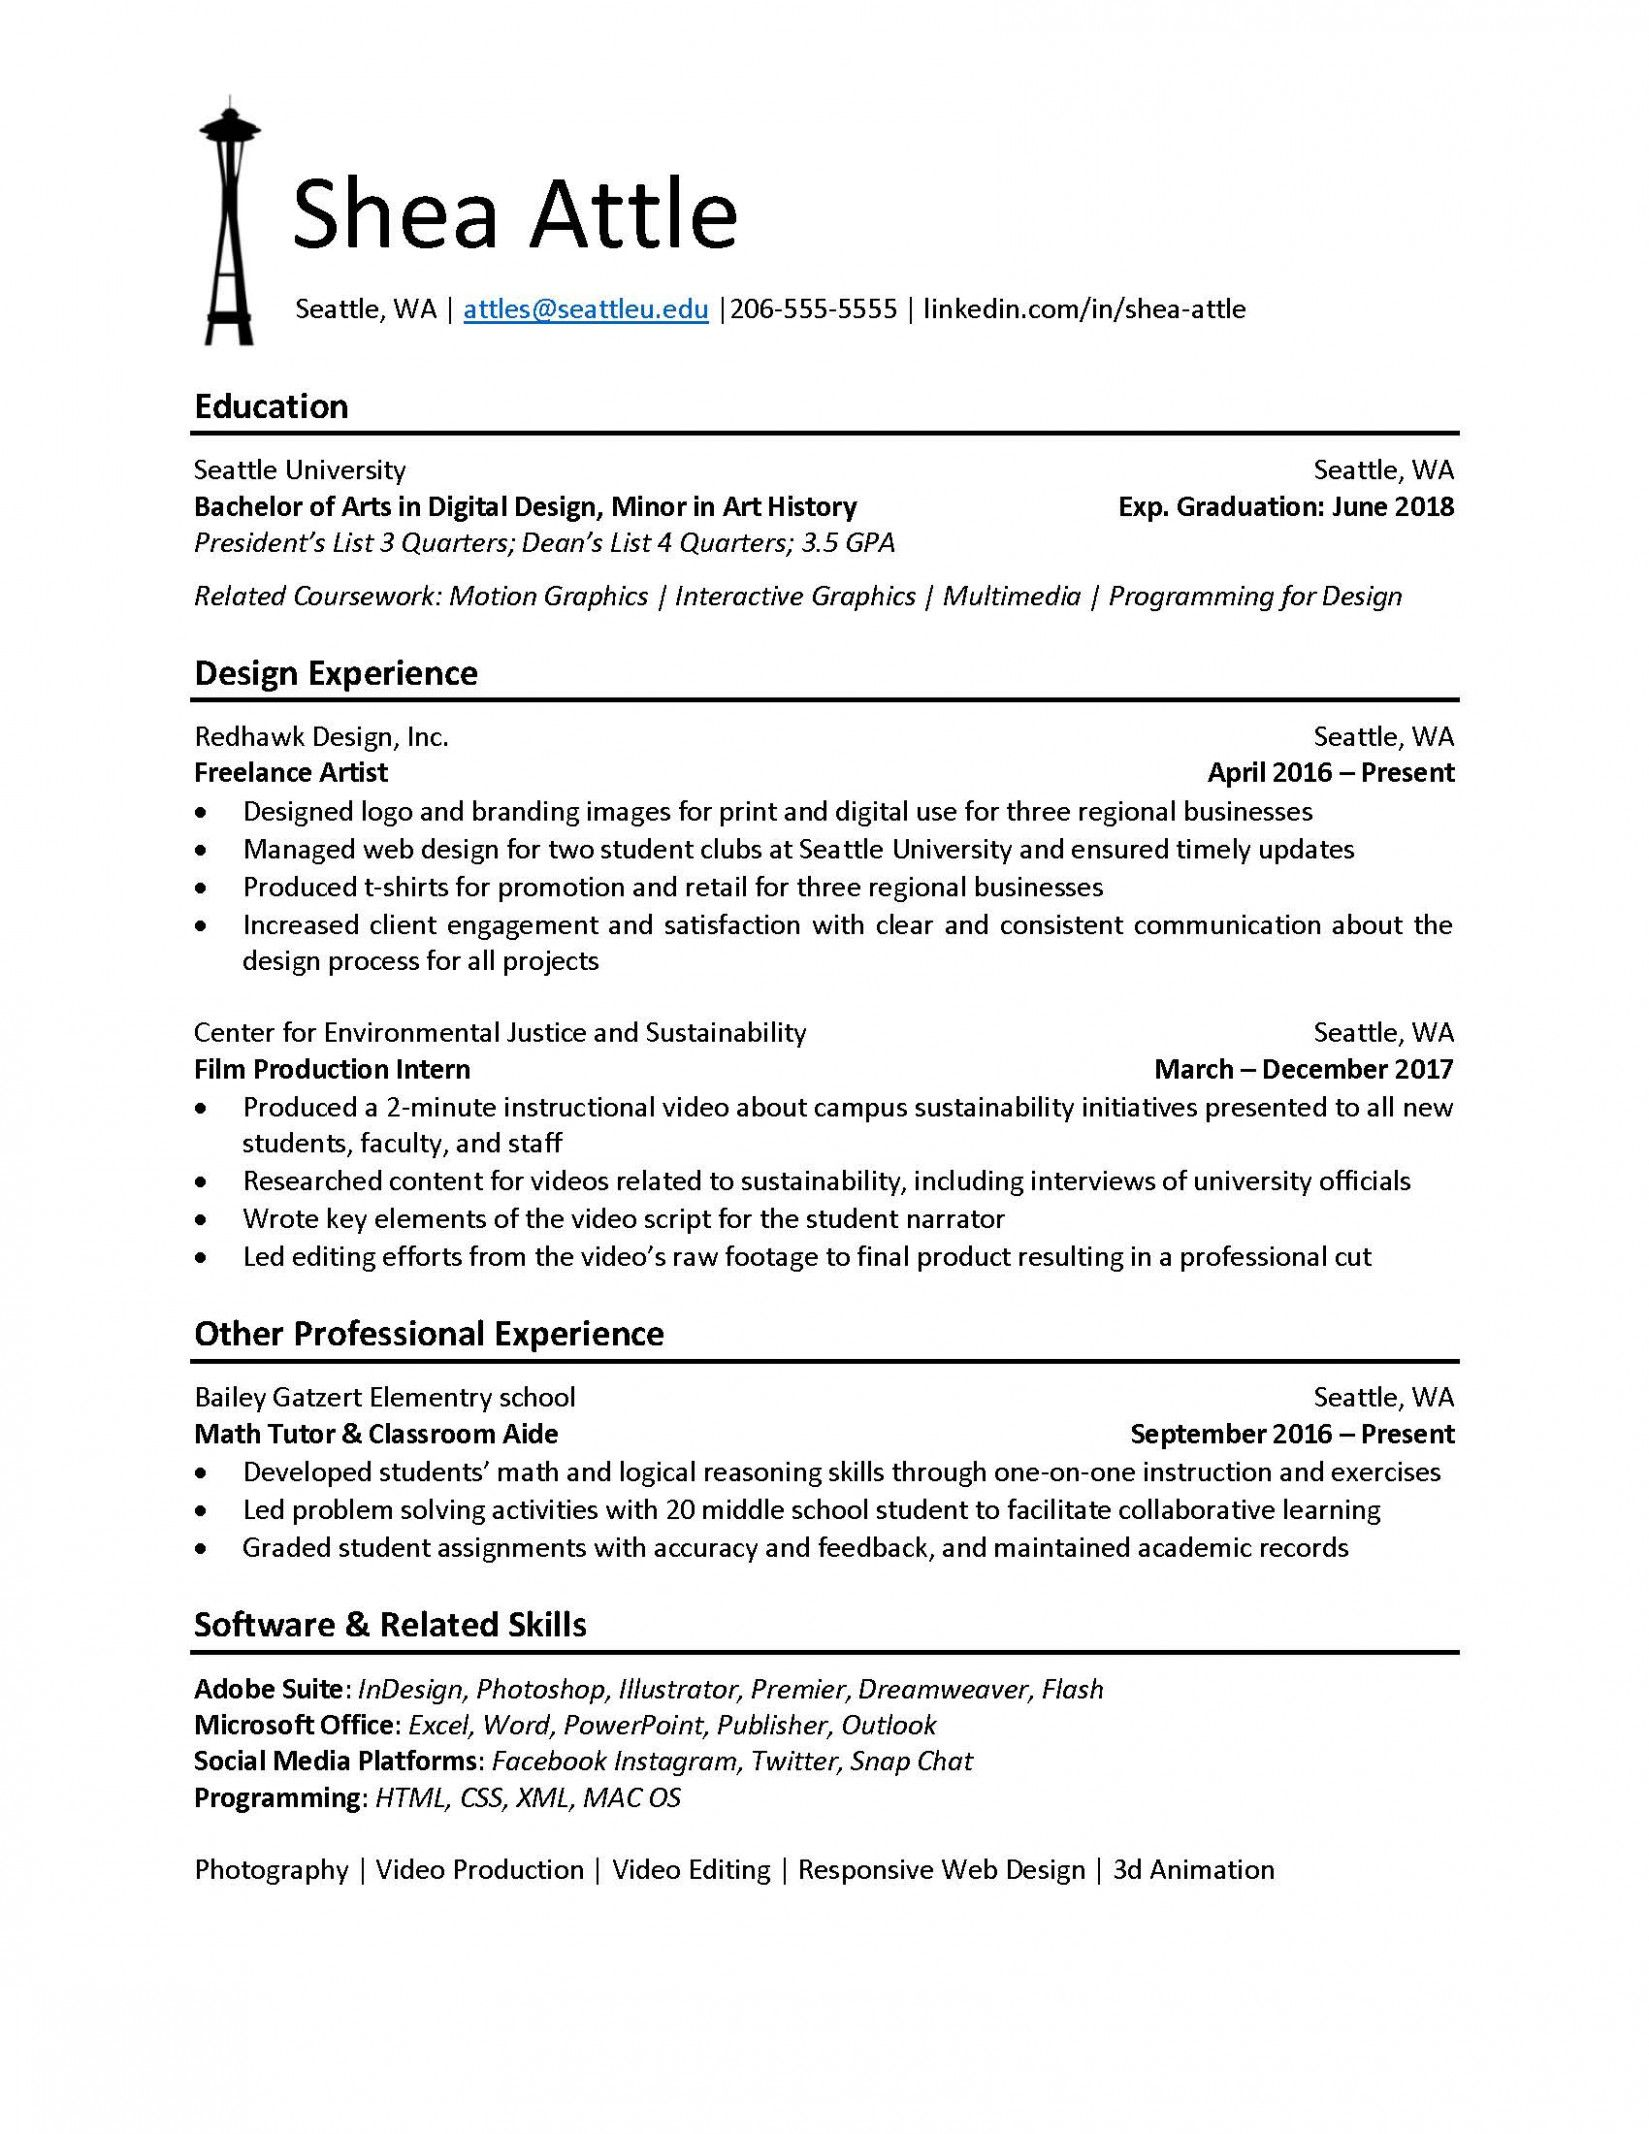 Name of Resume Examples 2019 Name of Resume File 2020